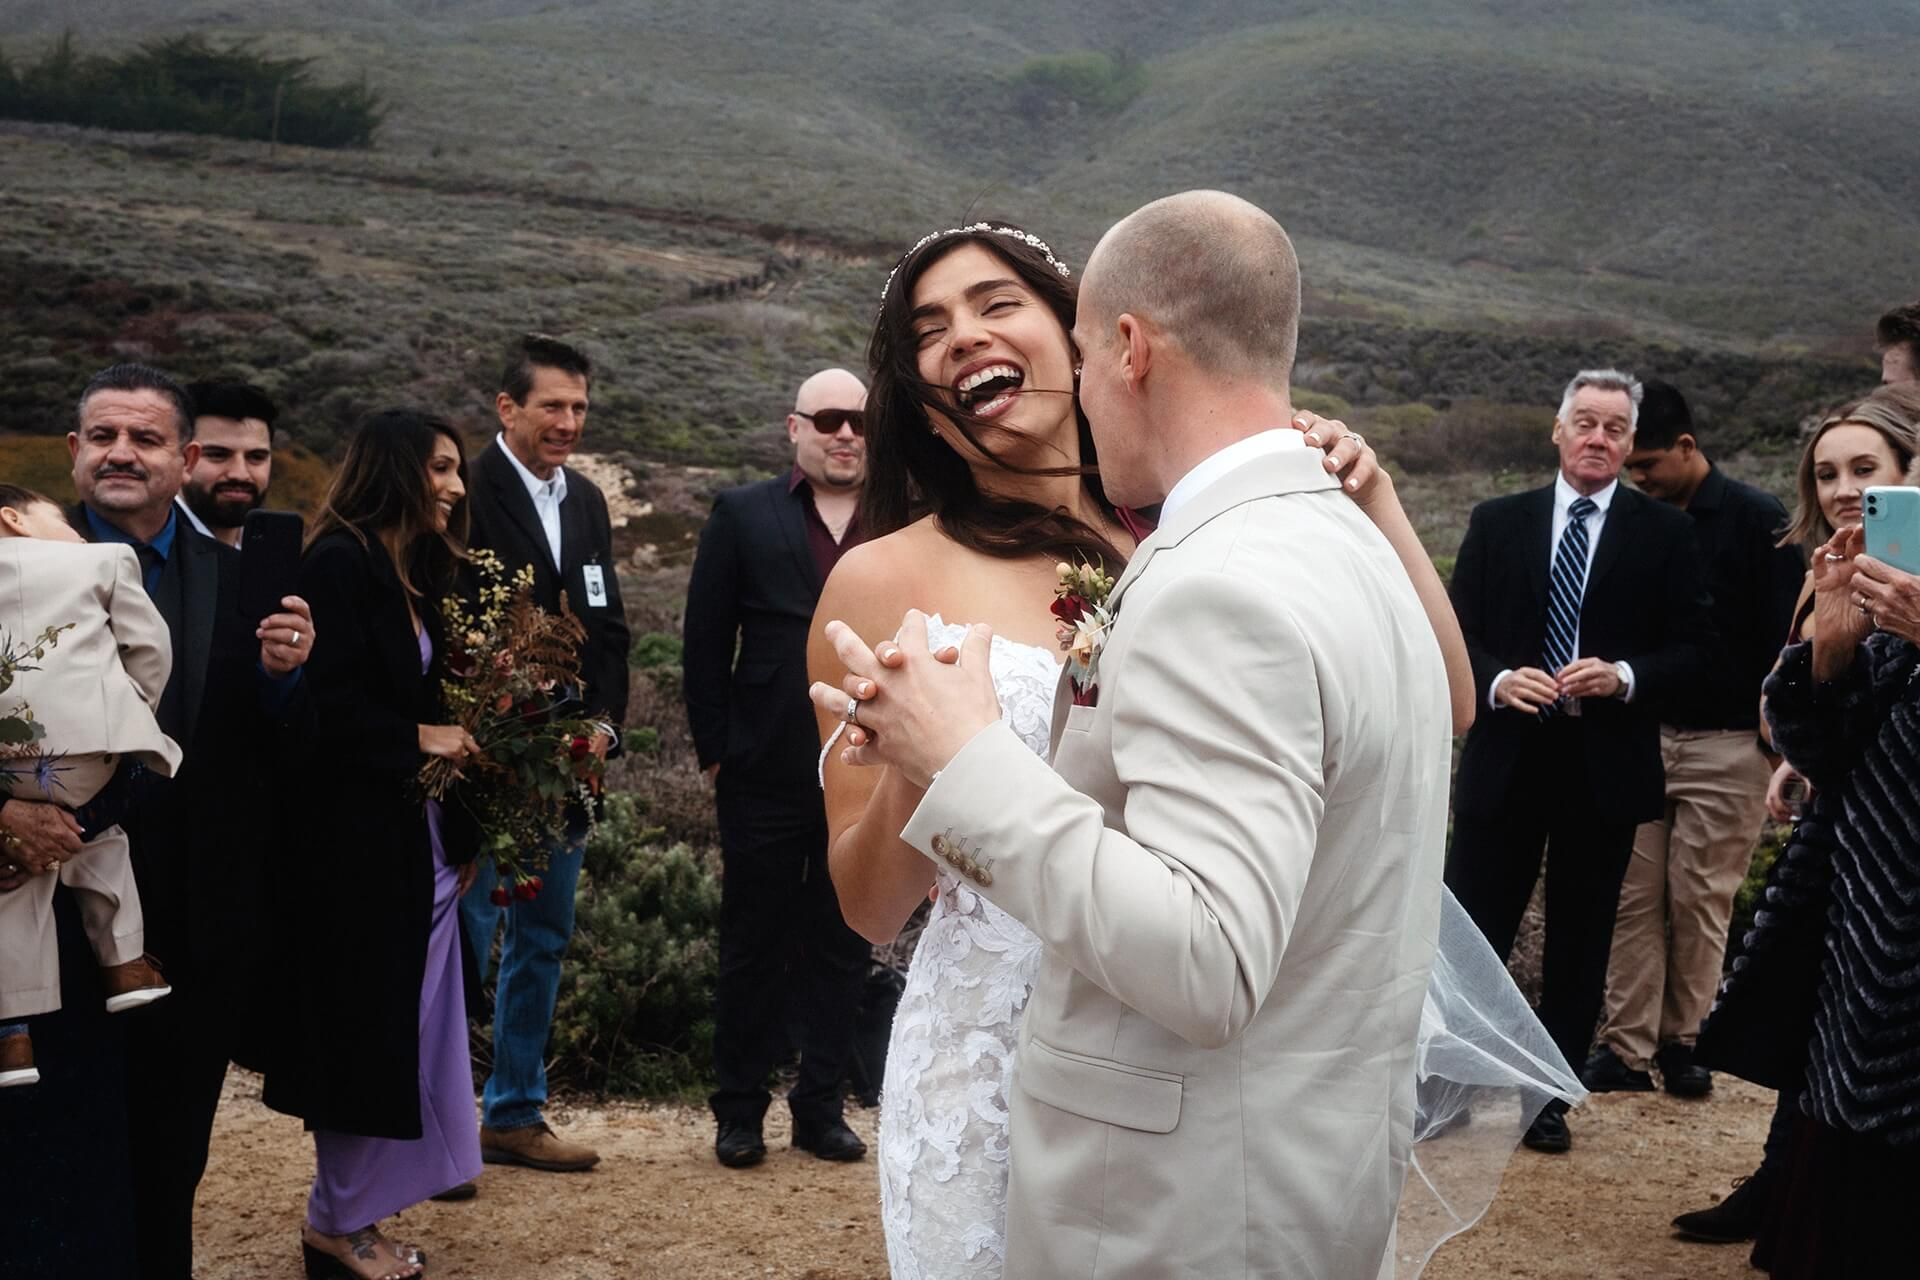 Intimate Big Sur wedding image   The couple had their first dance right there on the cliff edge